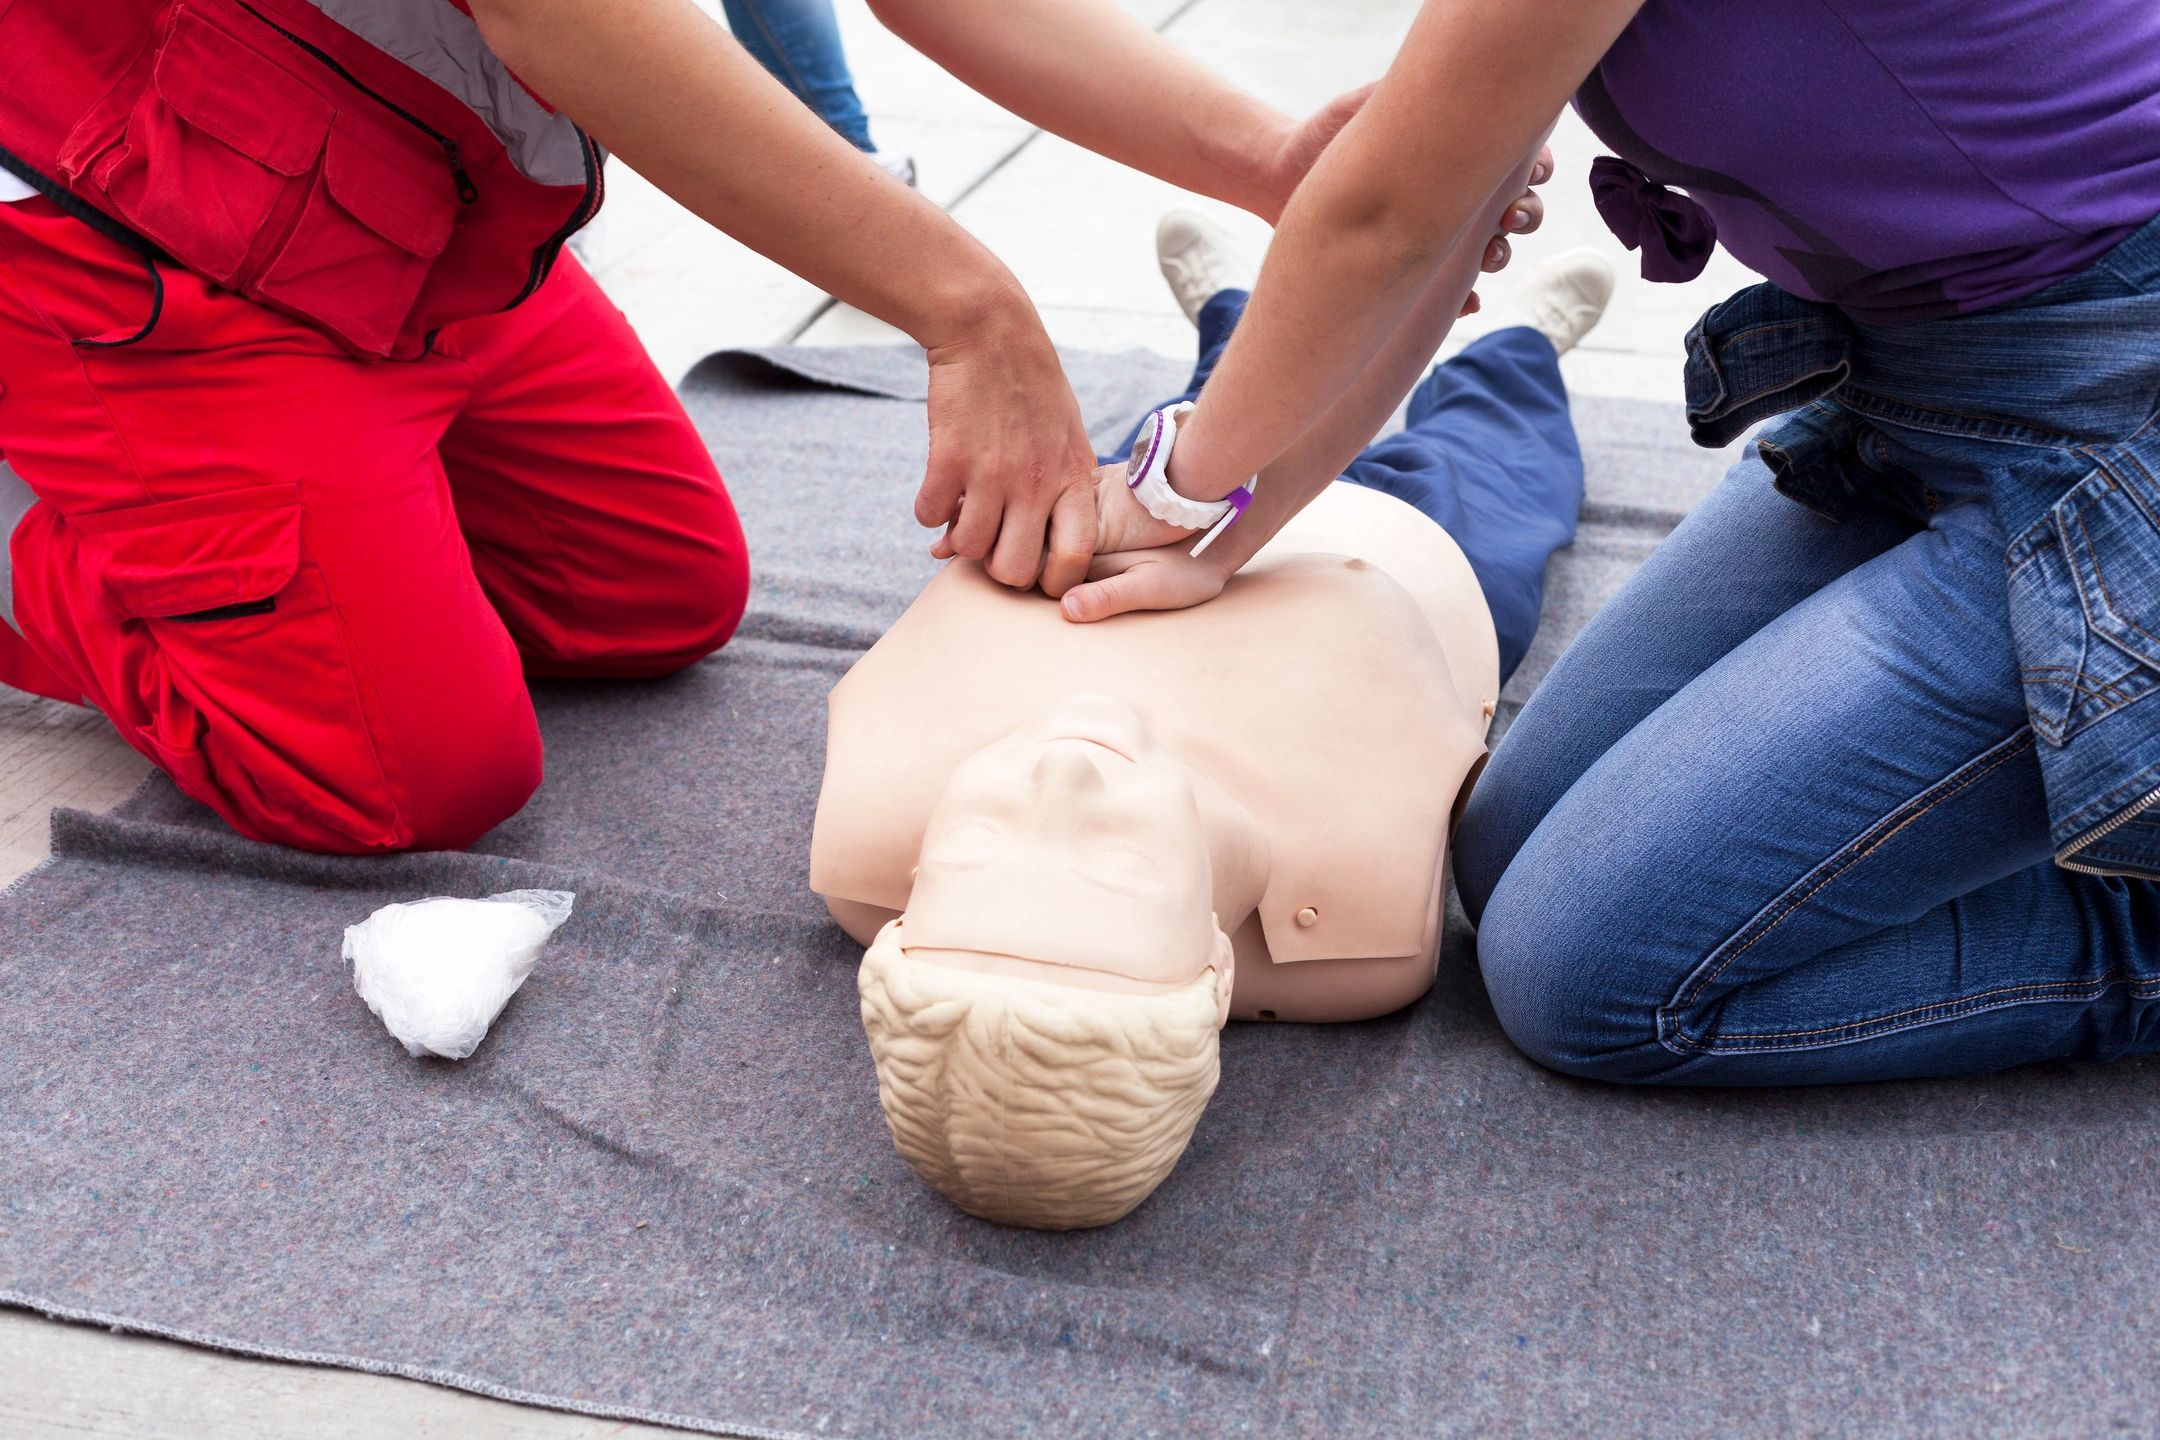 Cpr aed and first aid training 1betcityfo Choice Image